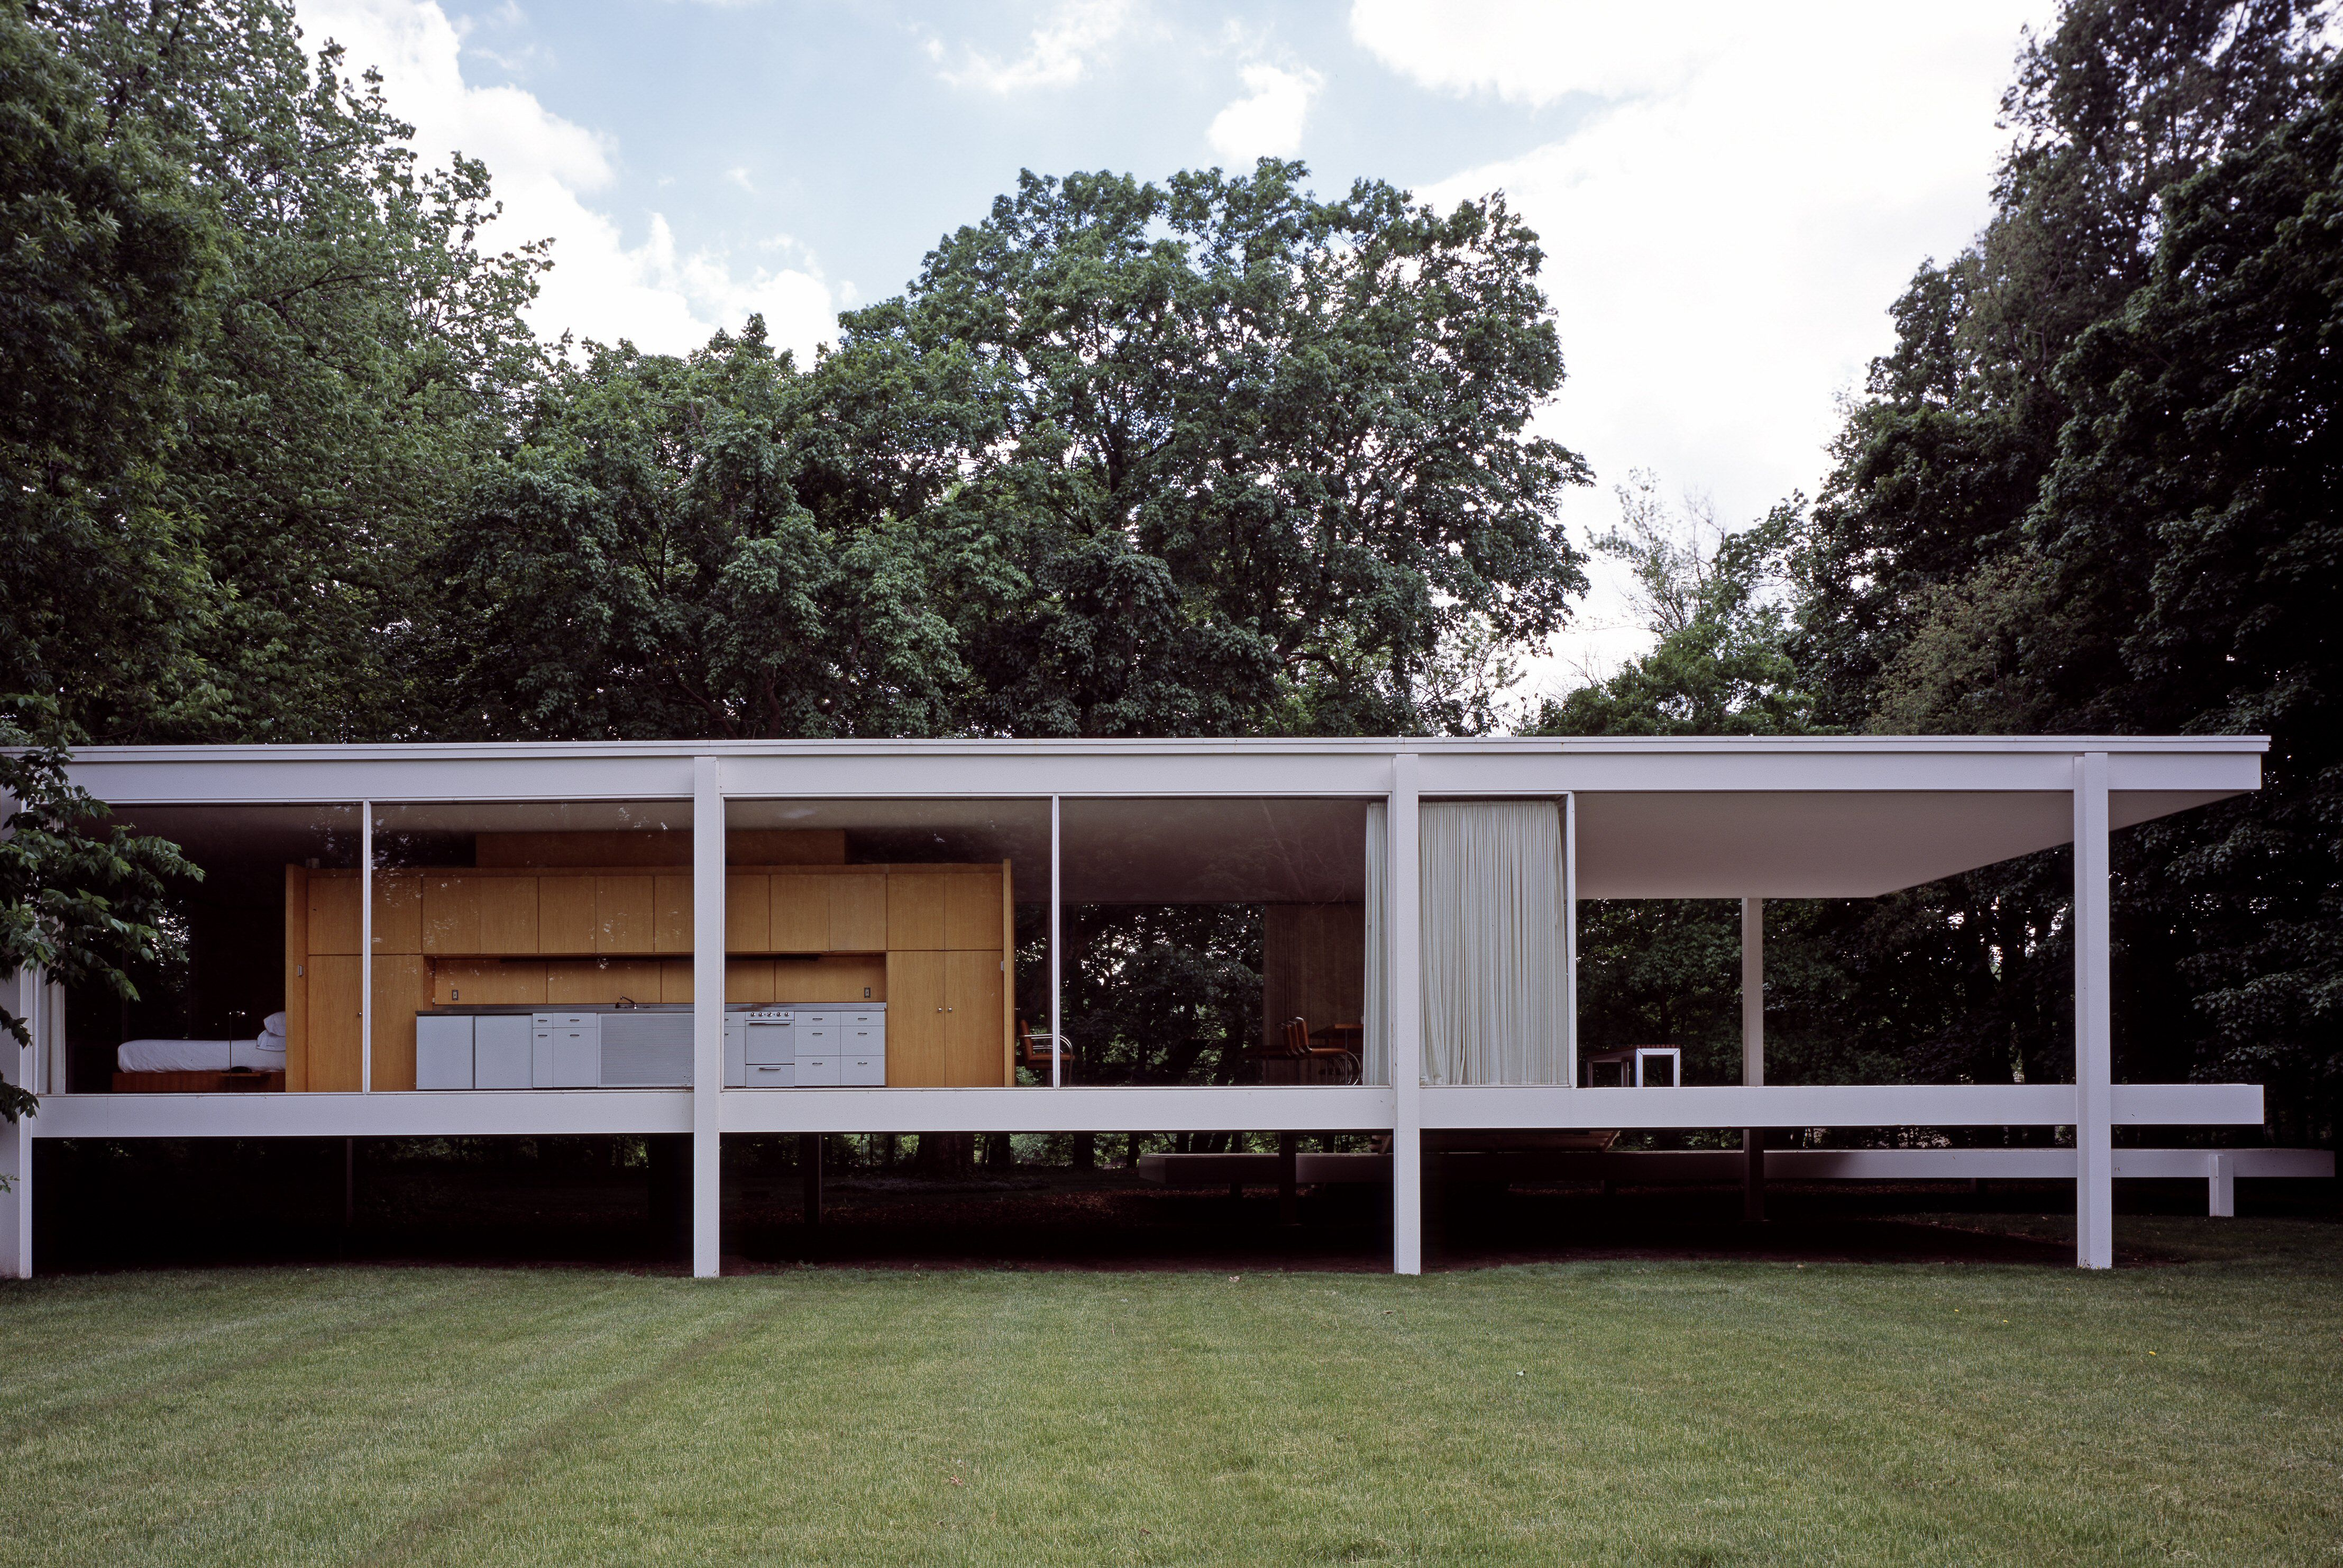 Mies van der rohe and the battle with farnsworth - Mies van der rohe ...